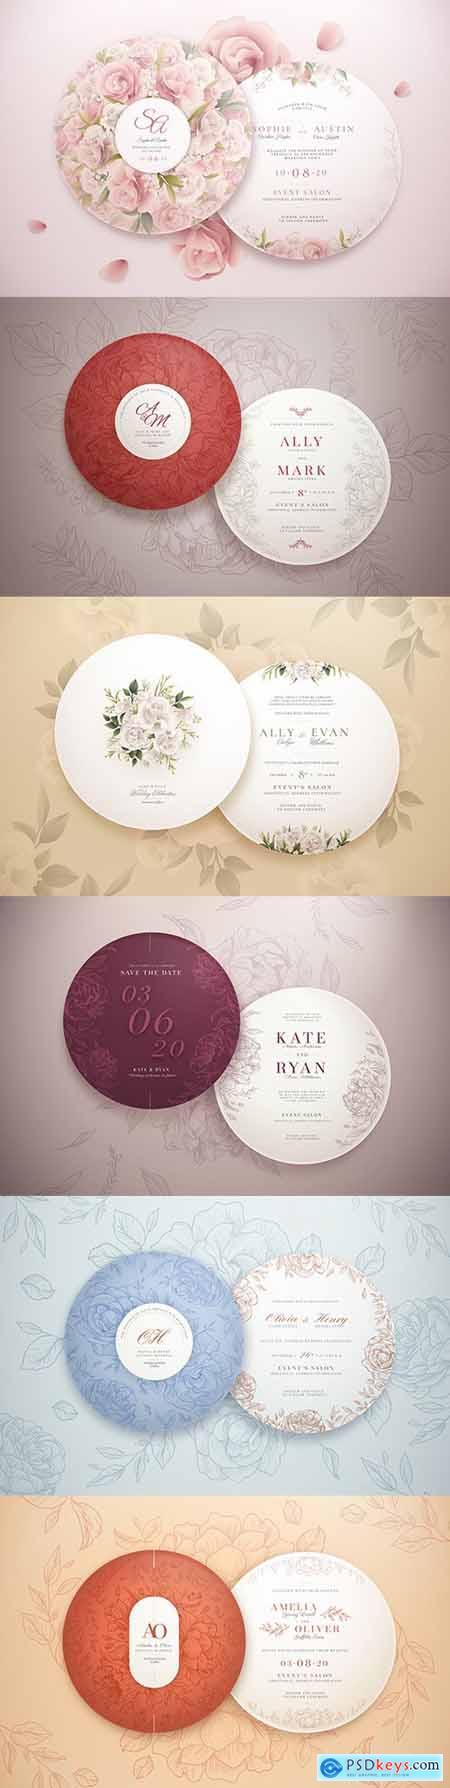 Elegant round template wedding invitation collection